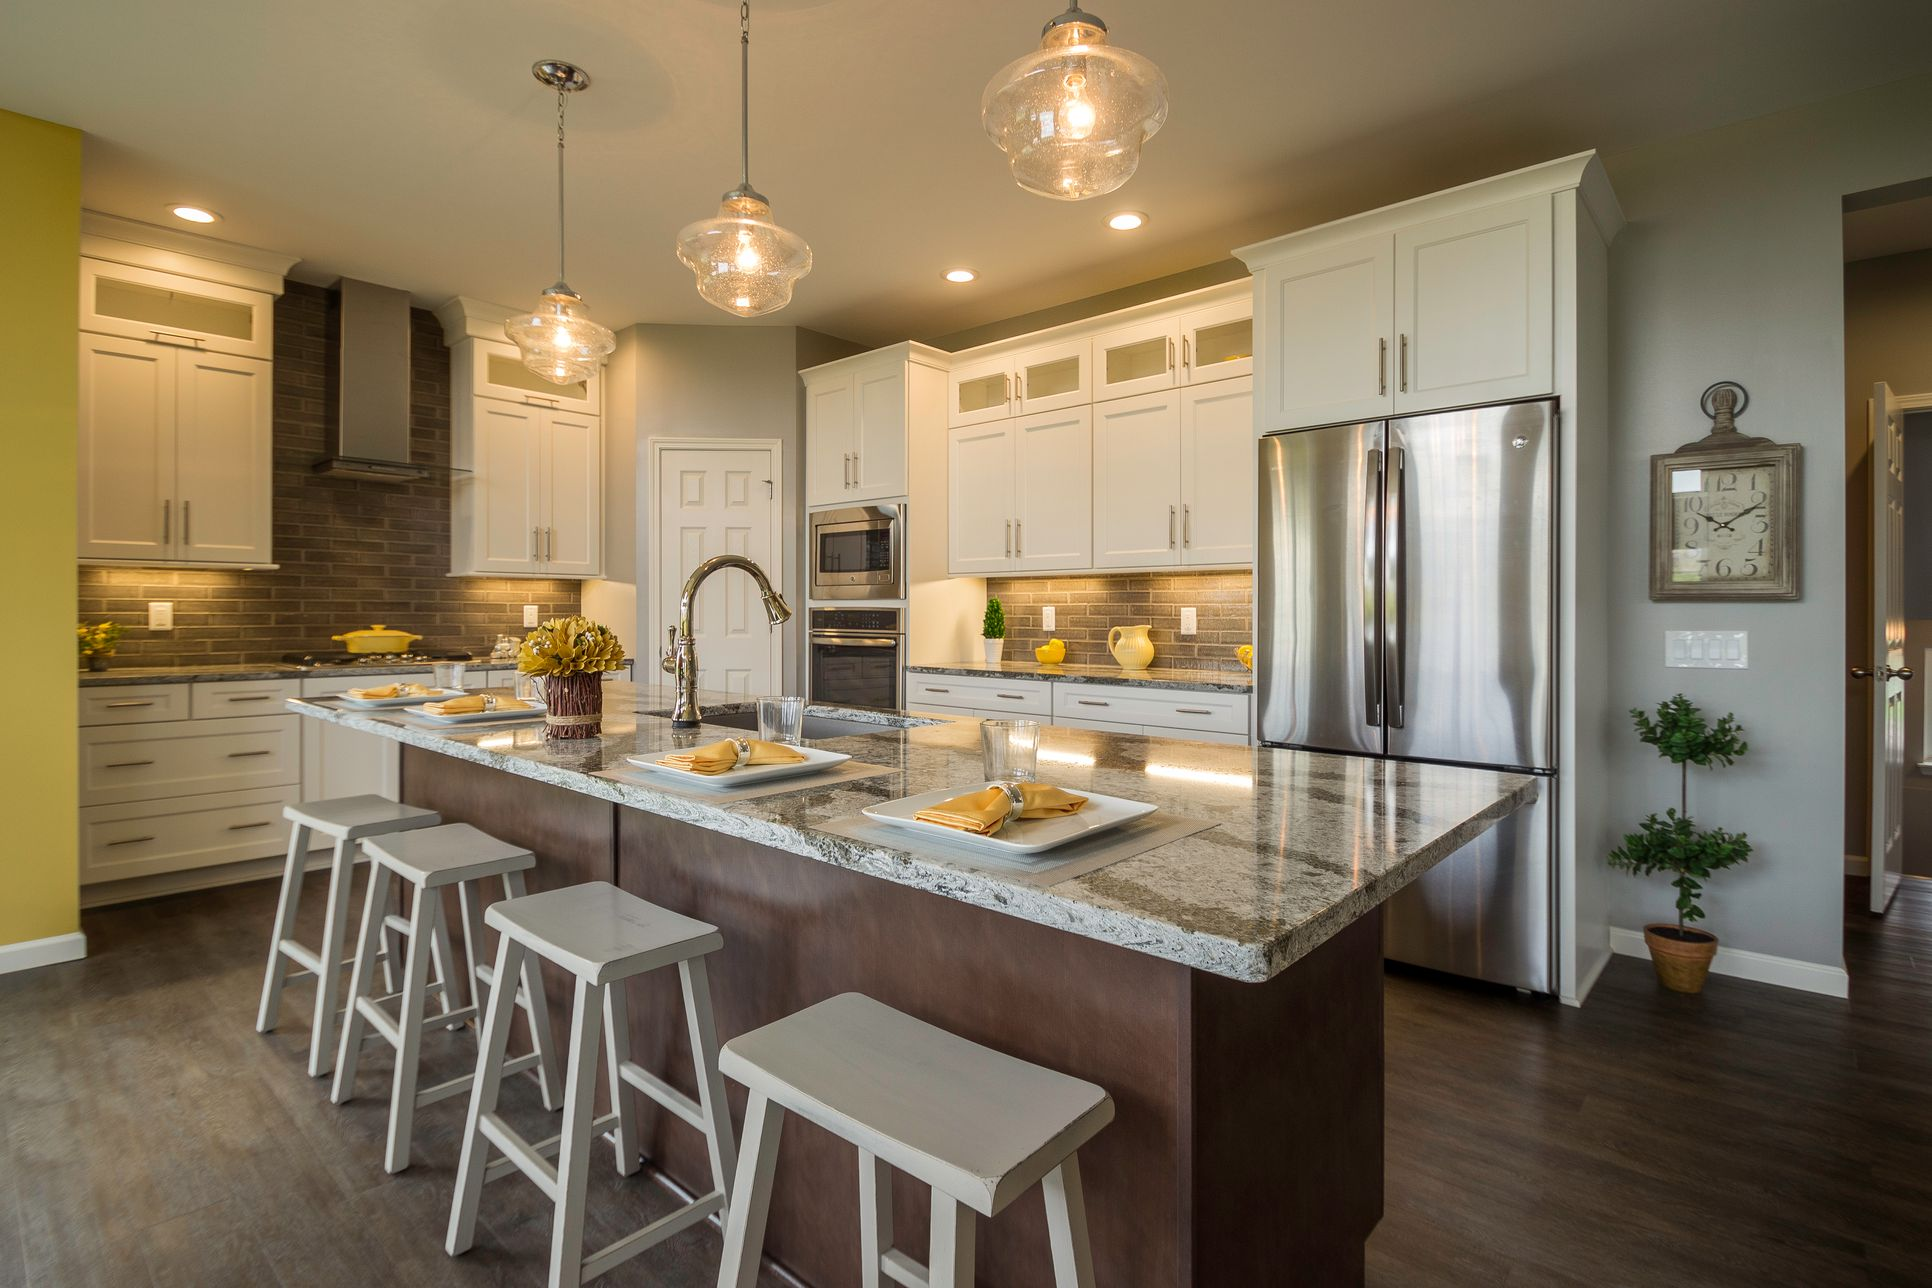 McMillon Model Home Kitchen:McMillon Model Home Kitchen